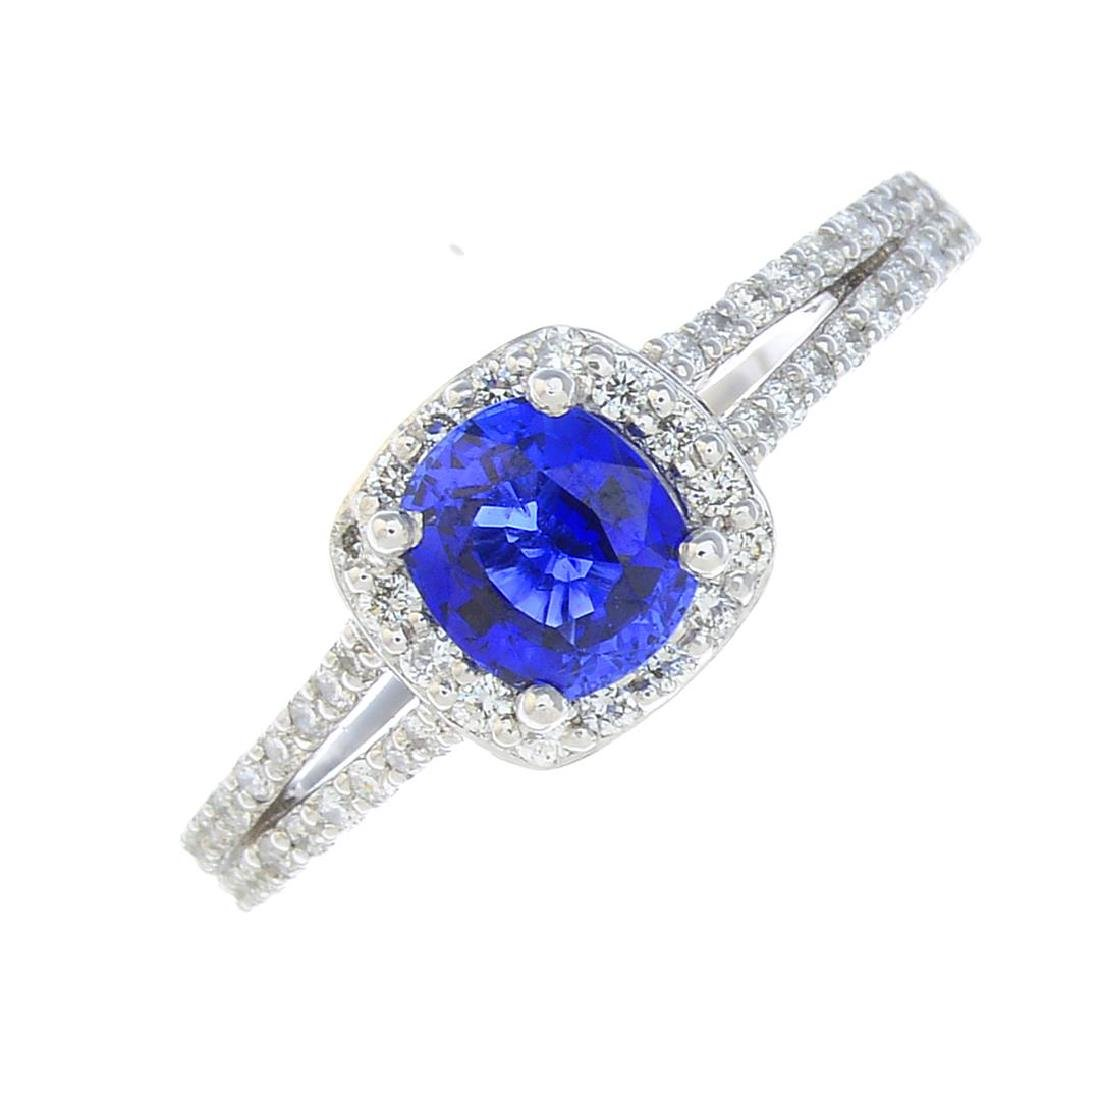 A sapphire and diamond cluster ring. The cushion-shape